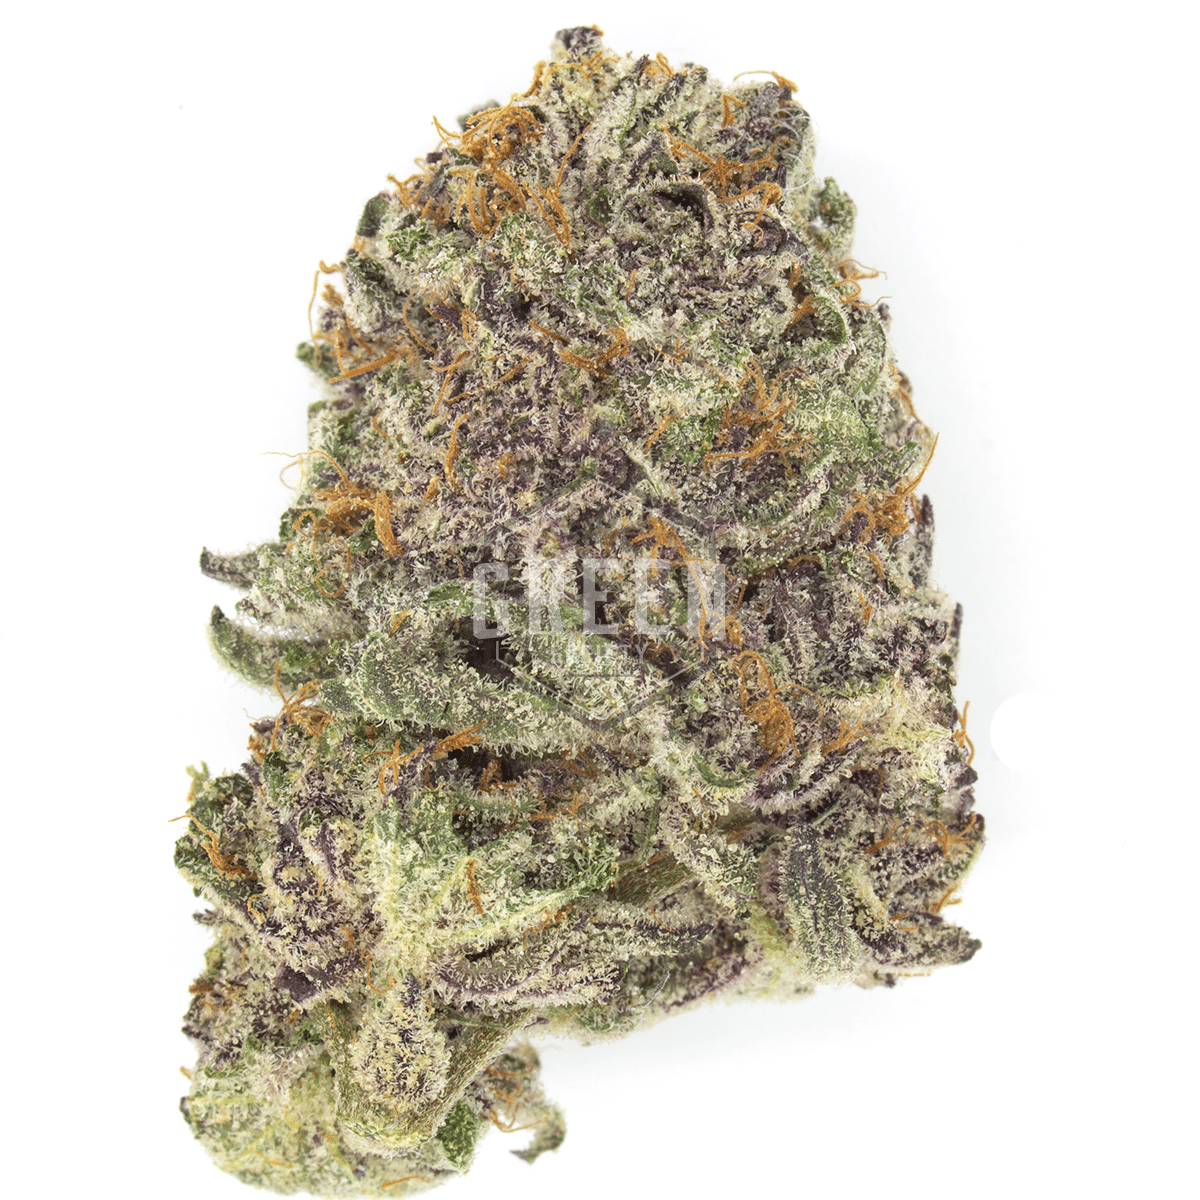 God Green Crack by Green Society - Image © 2018 Green Society. All Rights Reserved.